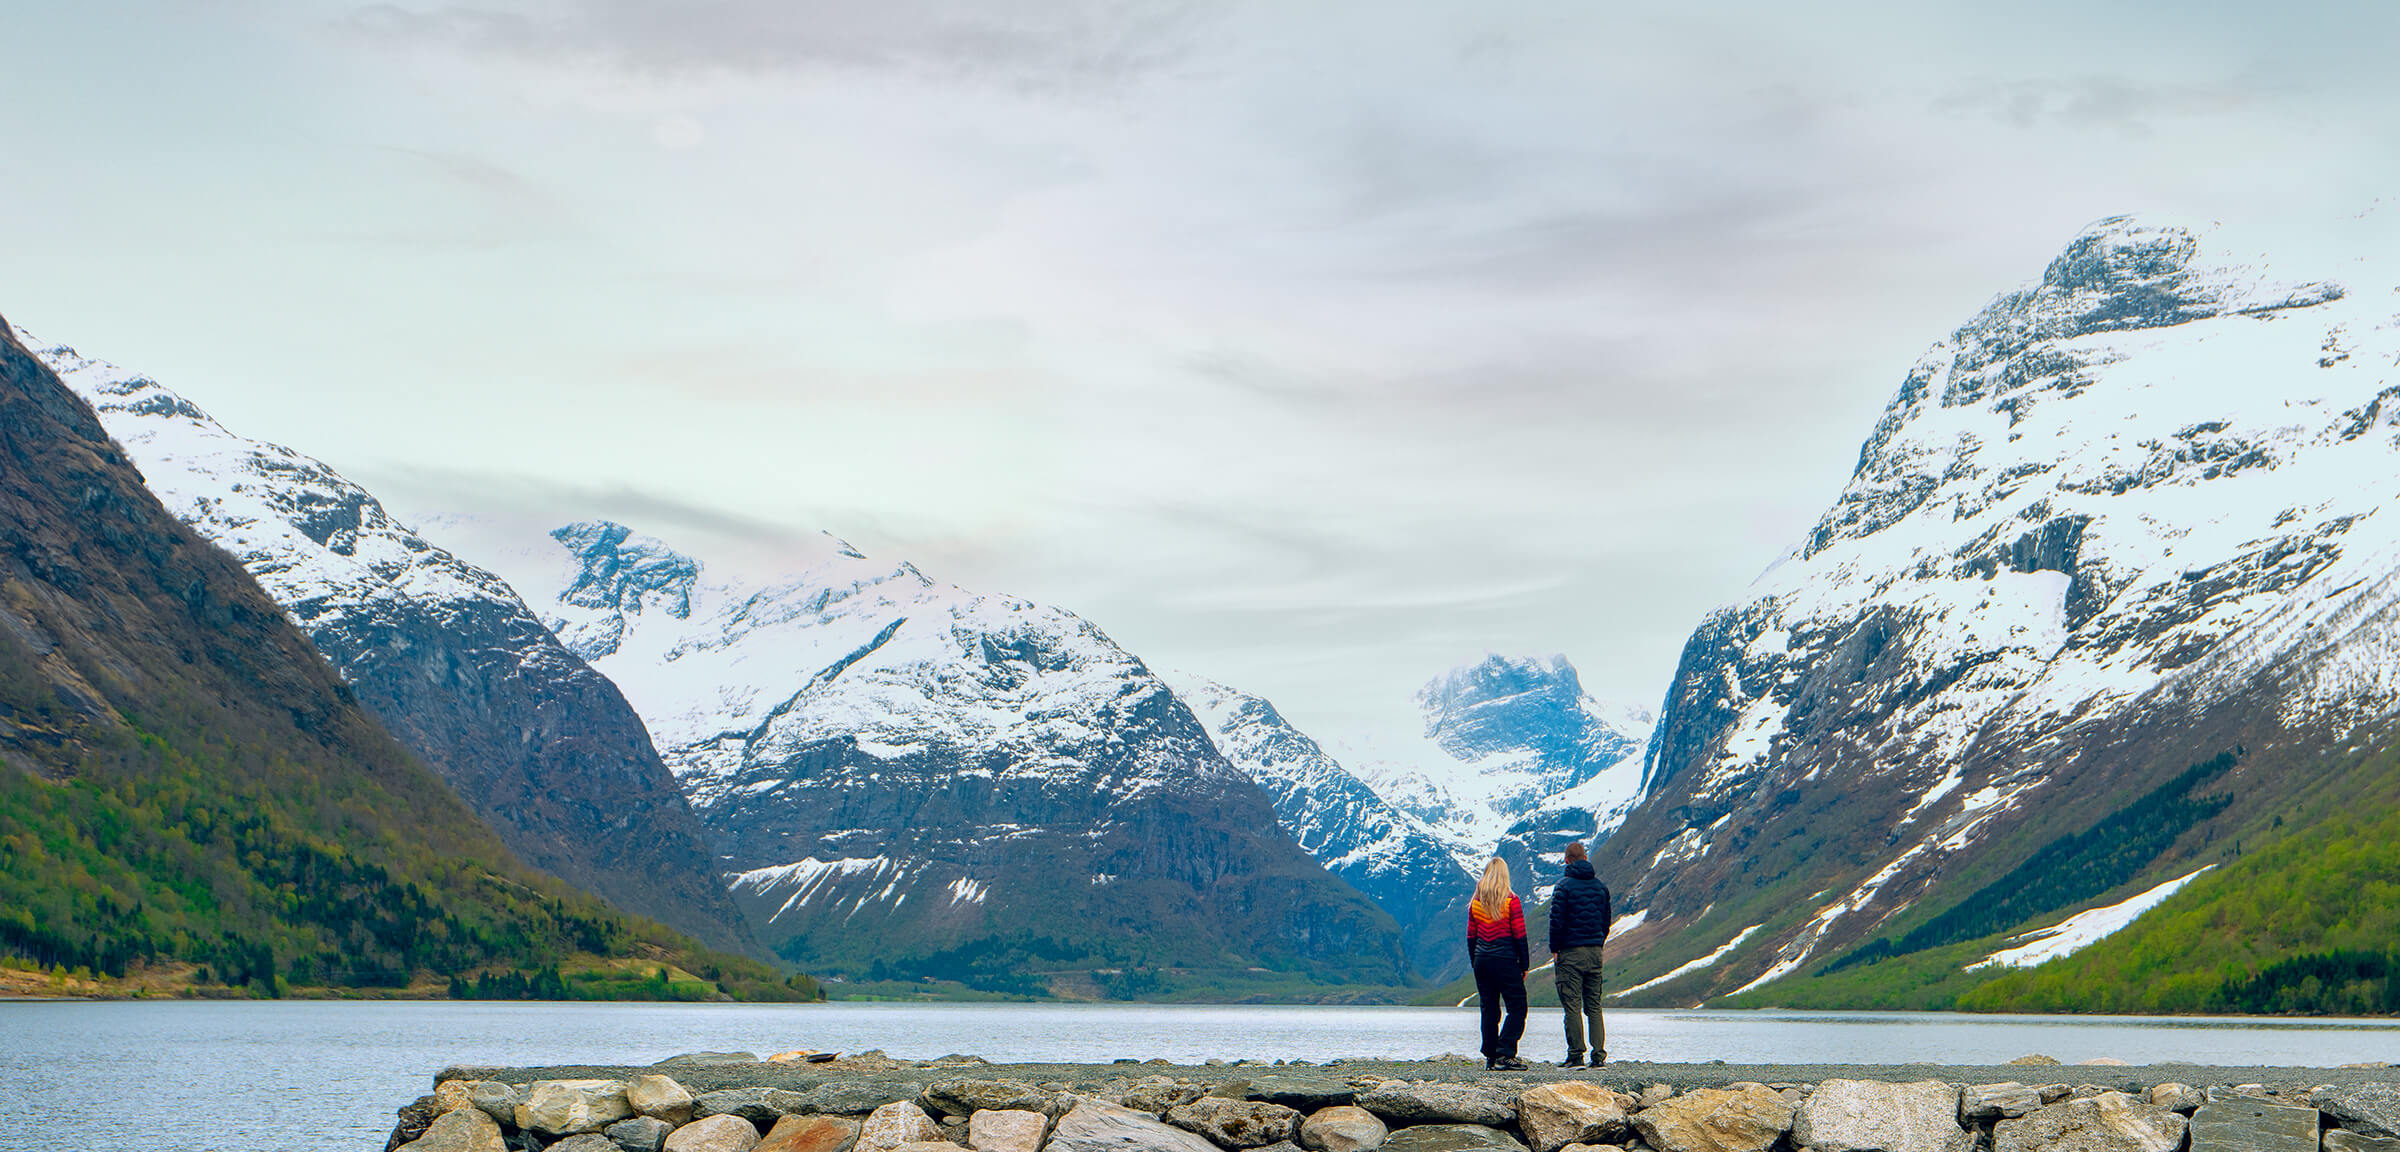 Two people on a stone bridge looking at mountains